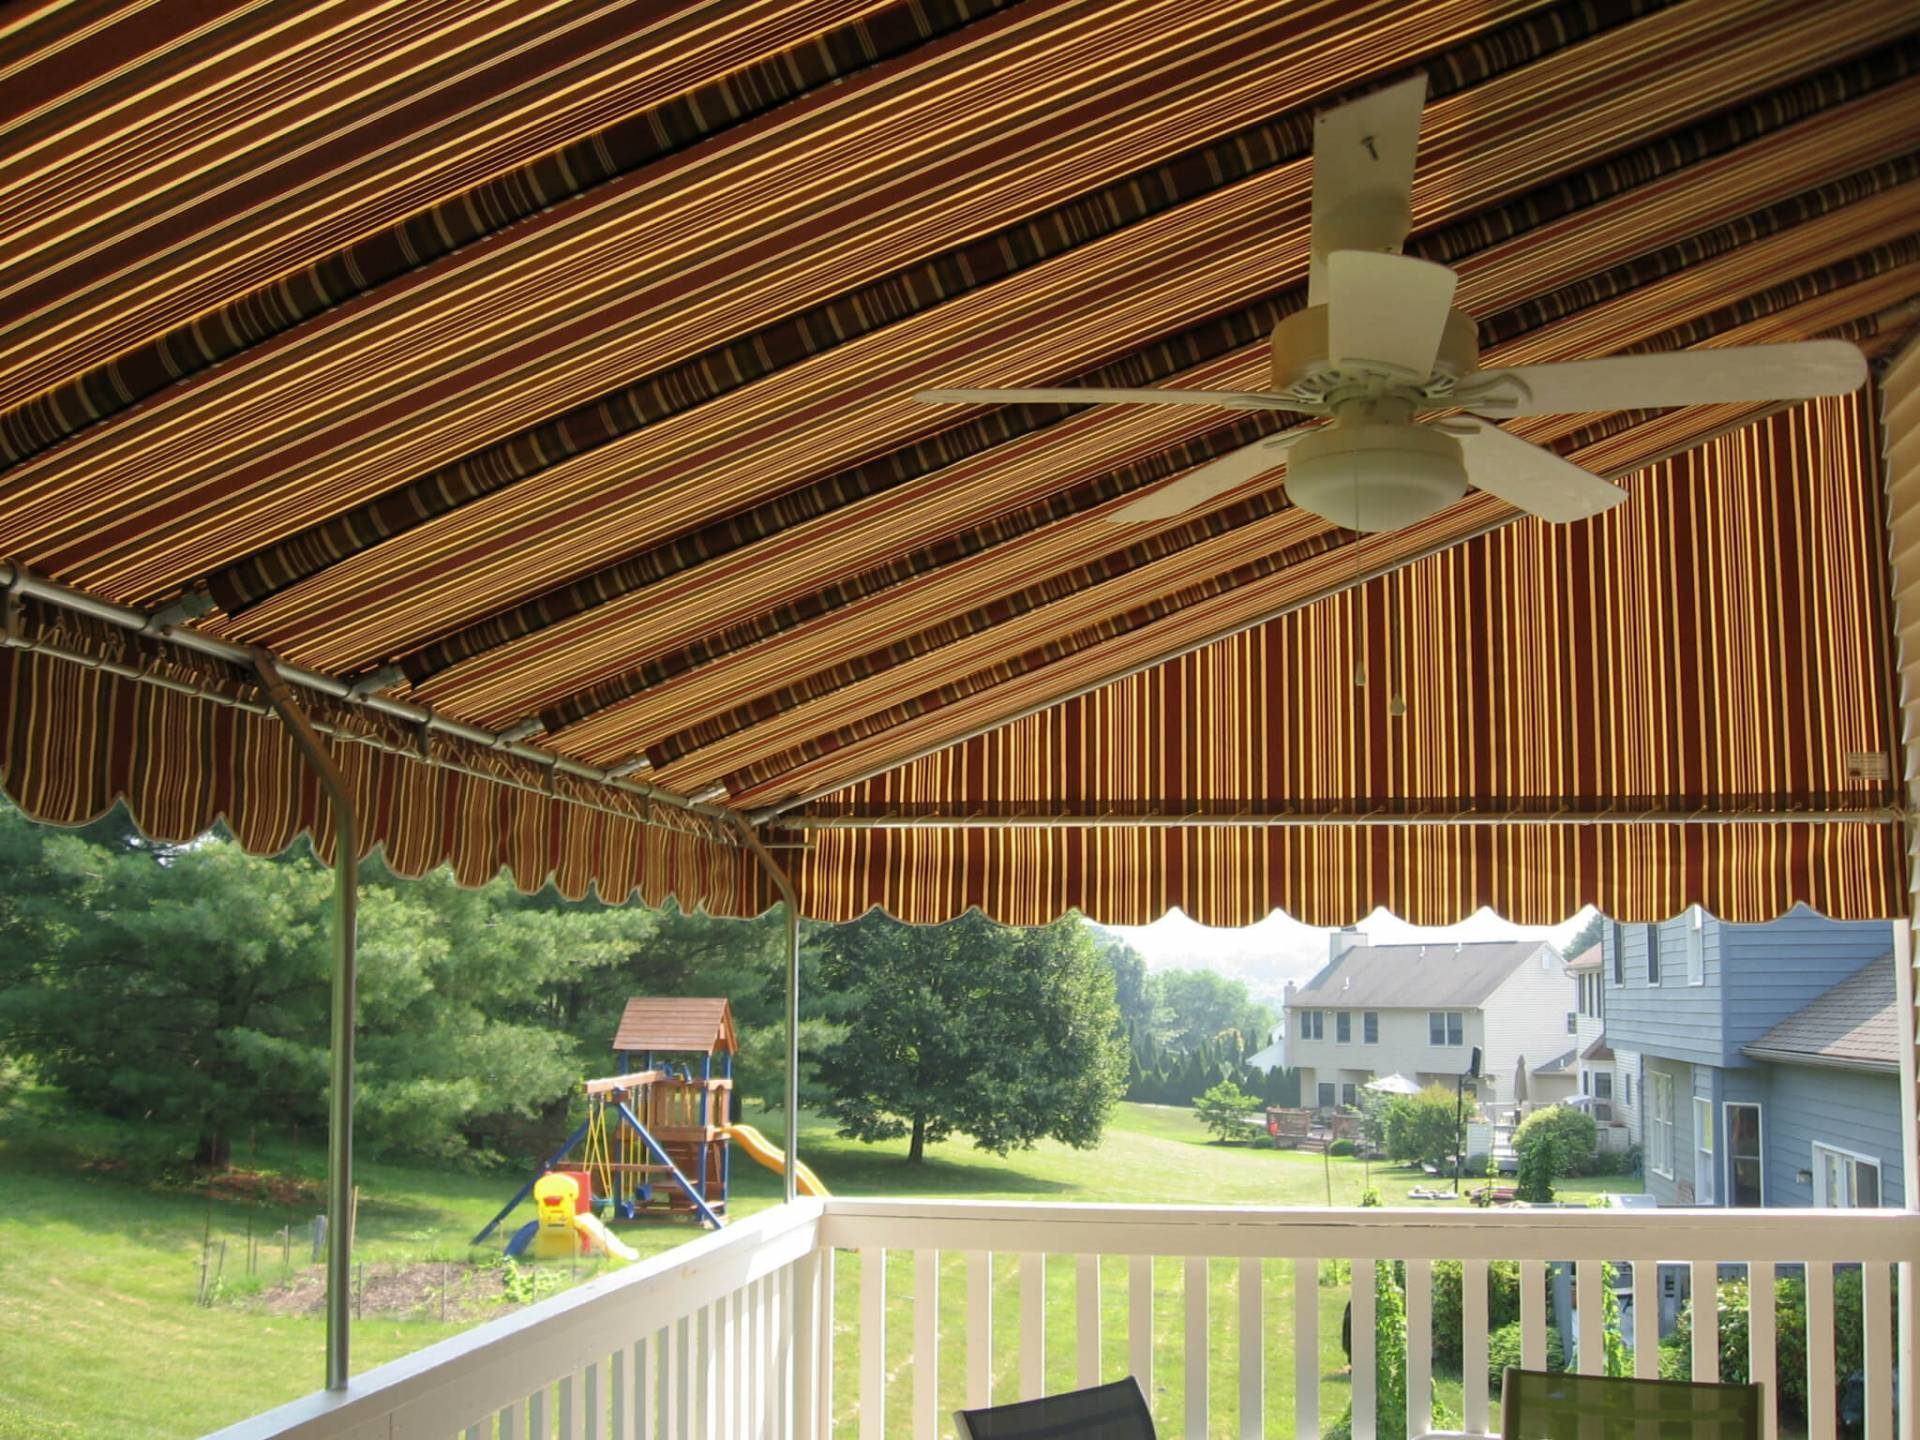 Sunbrella Fabric Awning With Galvanized Steel Frame And